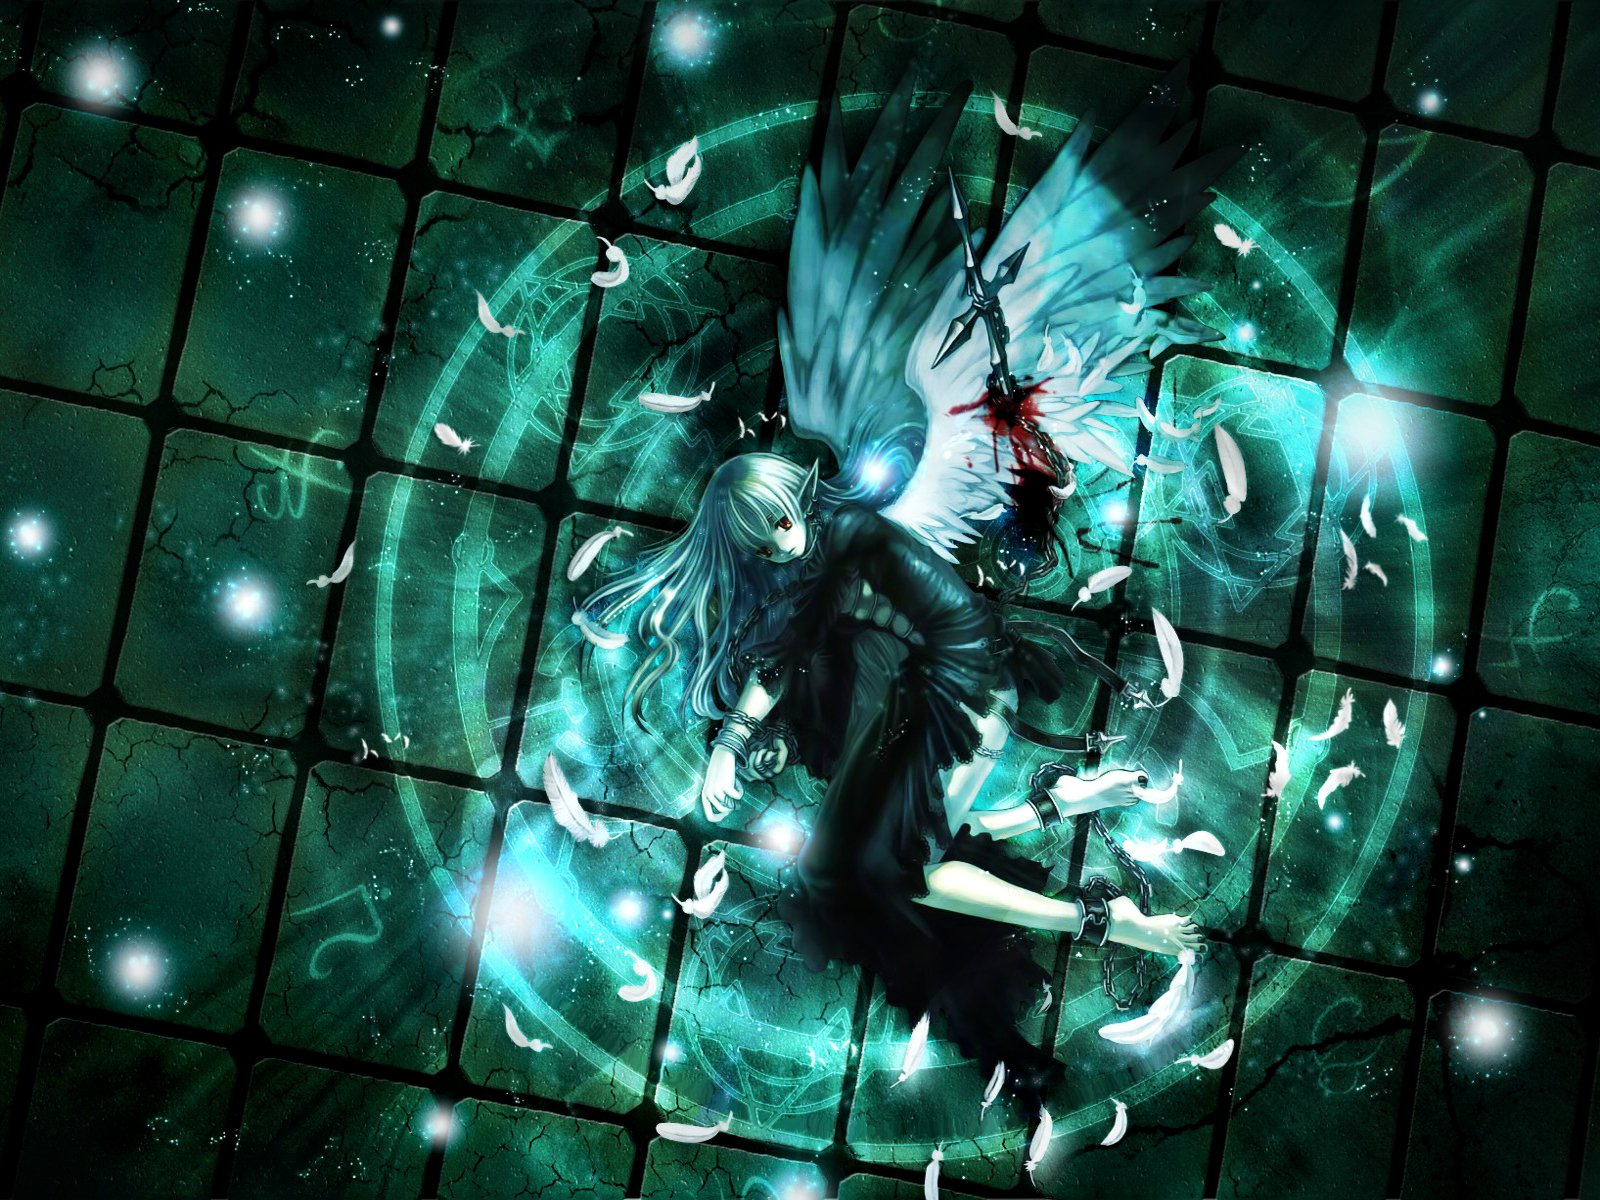 Anime - Original  Oscuro Pluma Wings Fallen Angel Anime Original (Anime) Chica Fondo de Pantalla